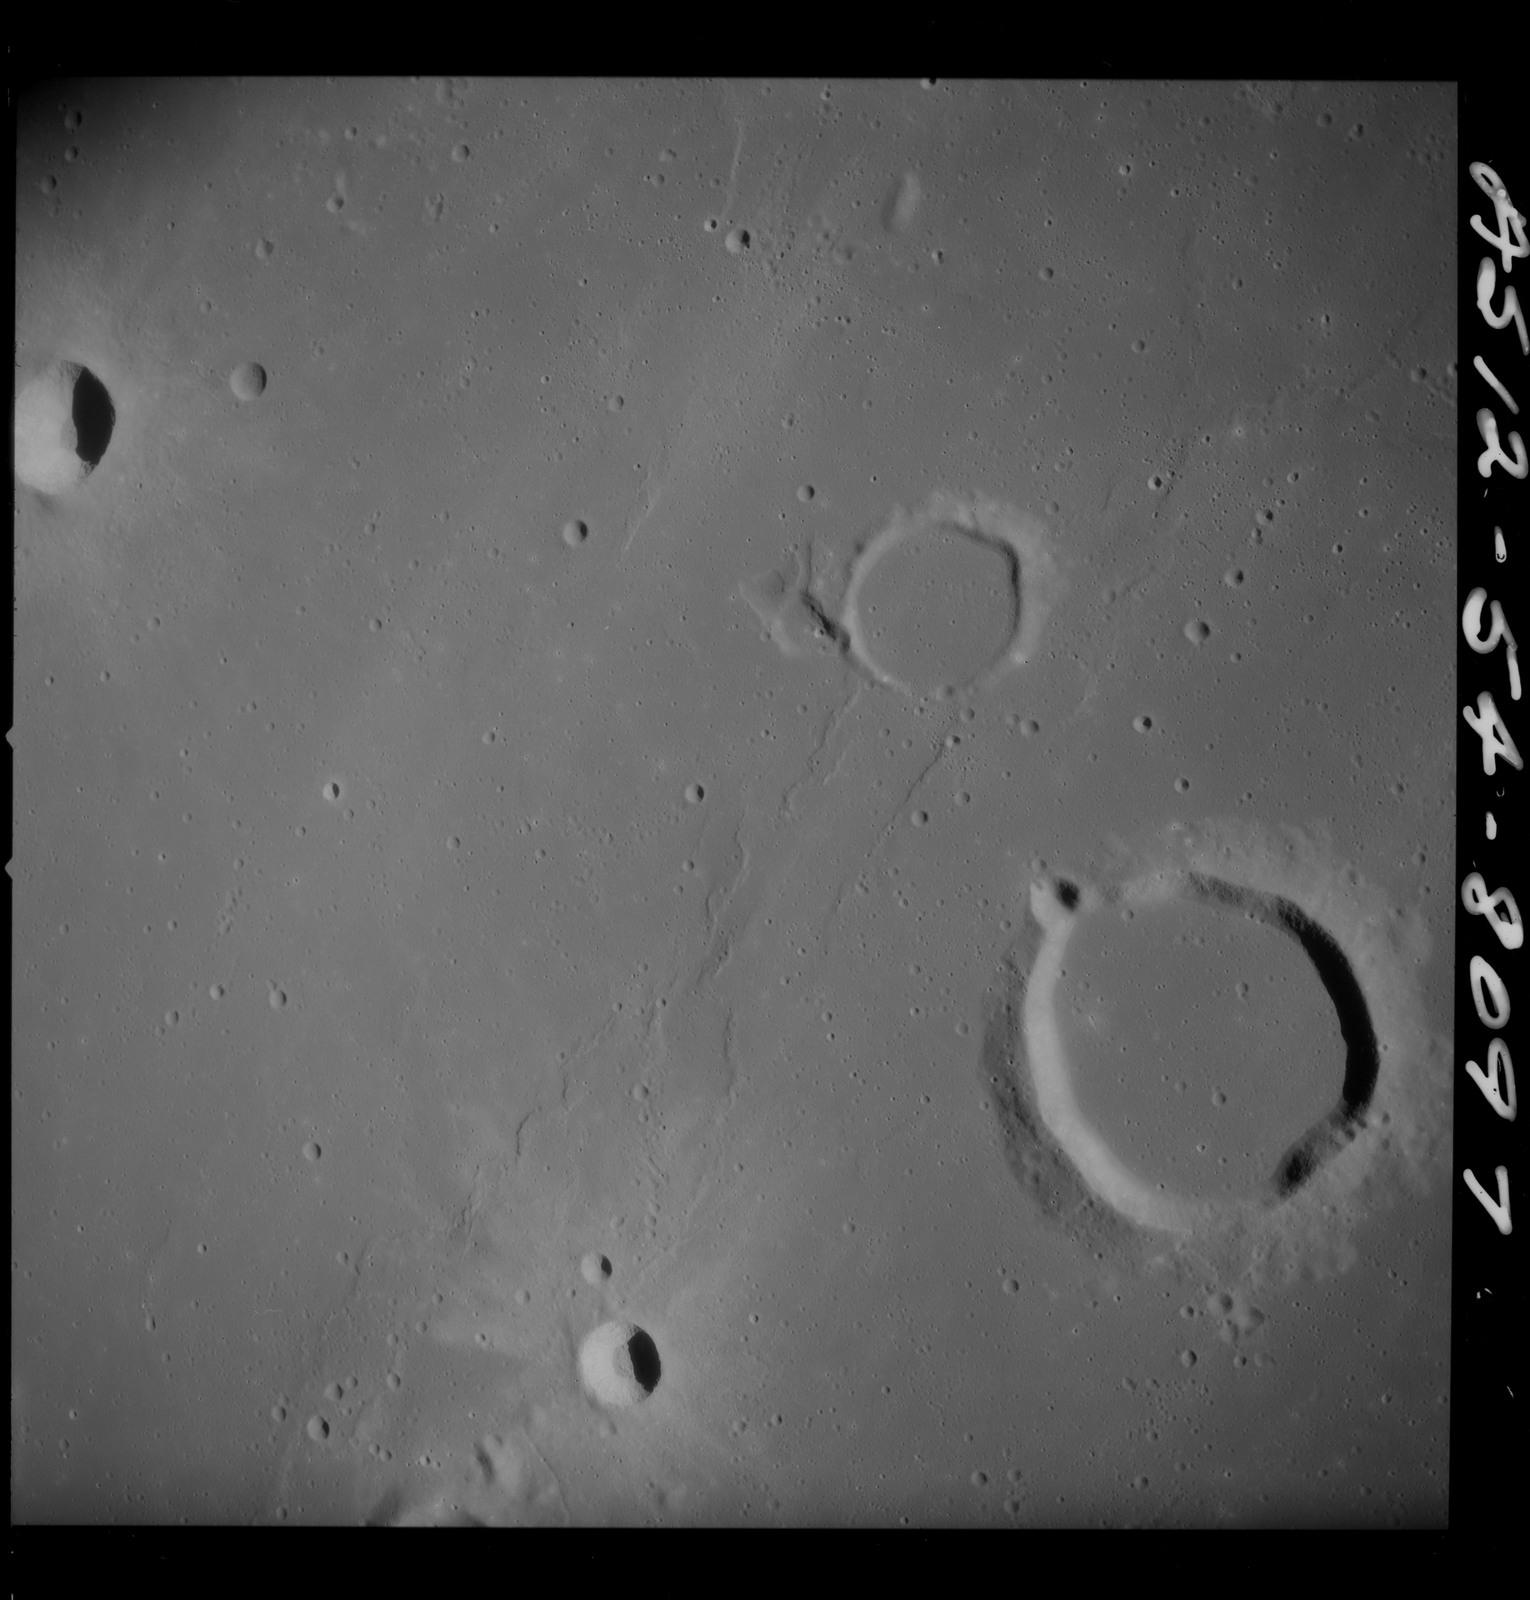 AS12-54-8097 - Apollo 12 - Apollo 12 Mission image  - Near vertical stereo strip view of the southern half of Lansberg Crater